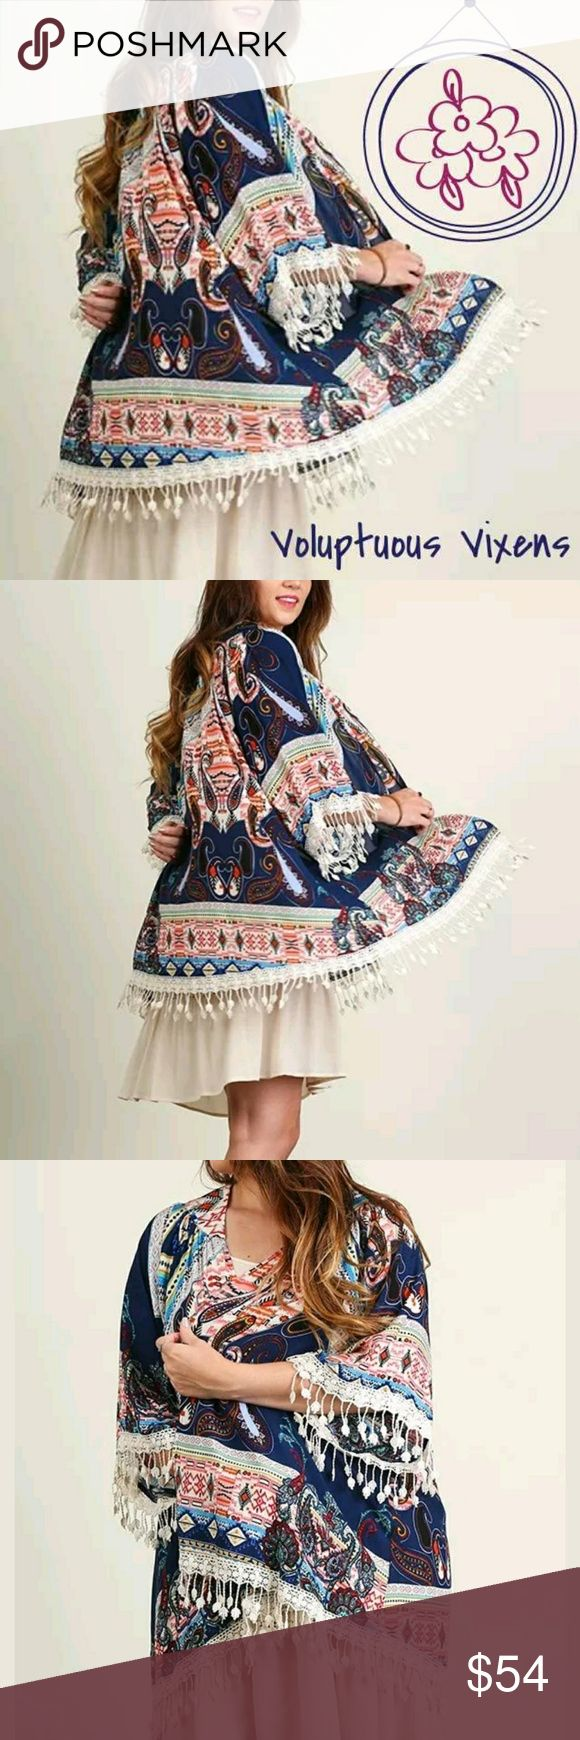 {PLUS} Gorgeous Bohemian Kimono with Fringes USA! Beautiful Bohemian kimono with fringes. USA size 3X. Lightweight cotton fabric with whimsical print. Thanks for looking and Happy Poshing! Lynnette 🤣 Studio+ Tops